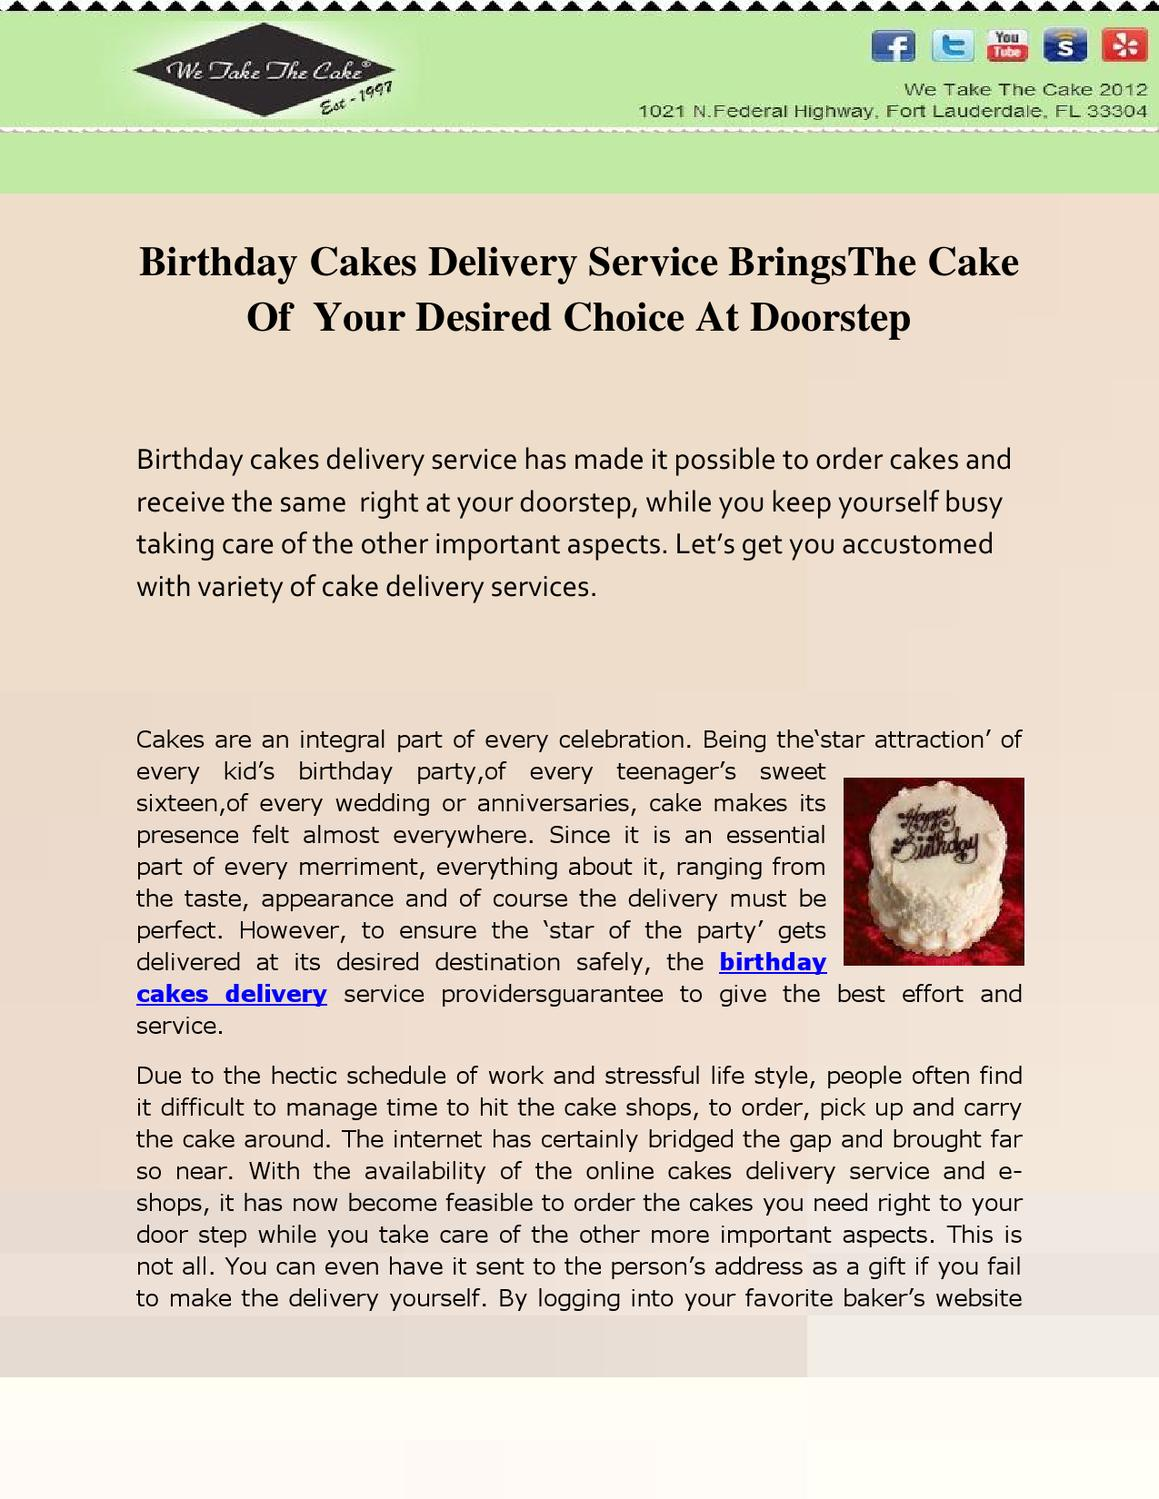 Birthday Cakes Delivery Service BringsThe Cake Of Your Desired Choice At Doorstep By Info Cohen